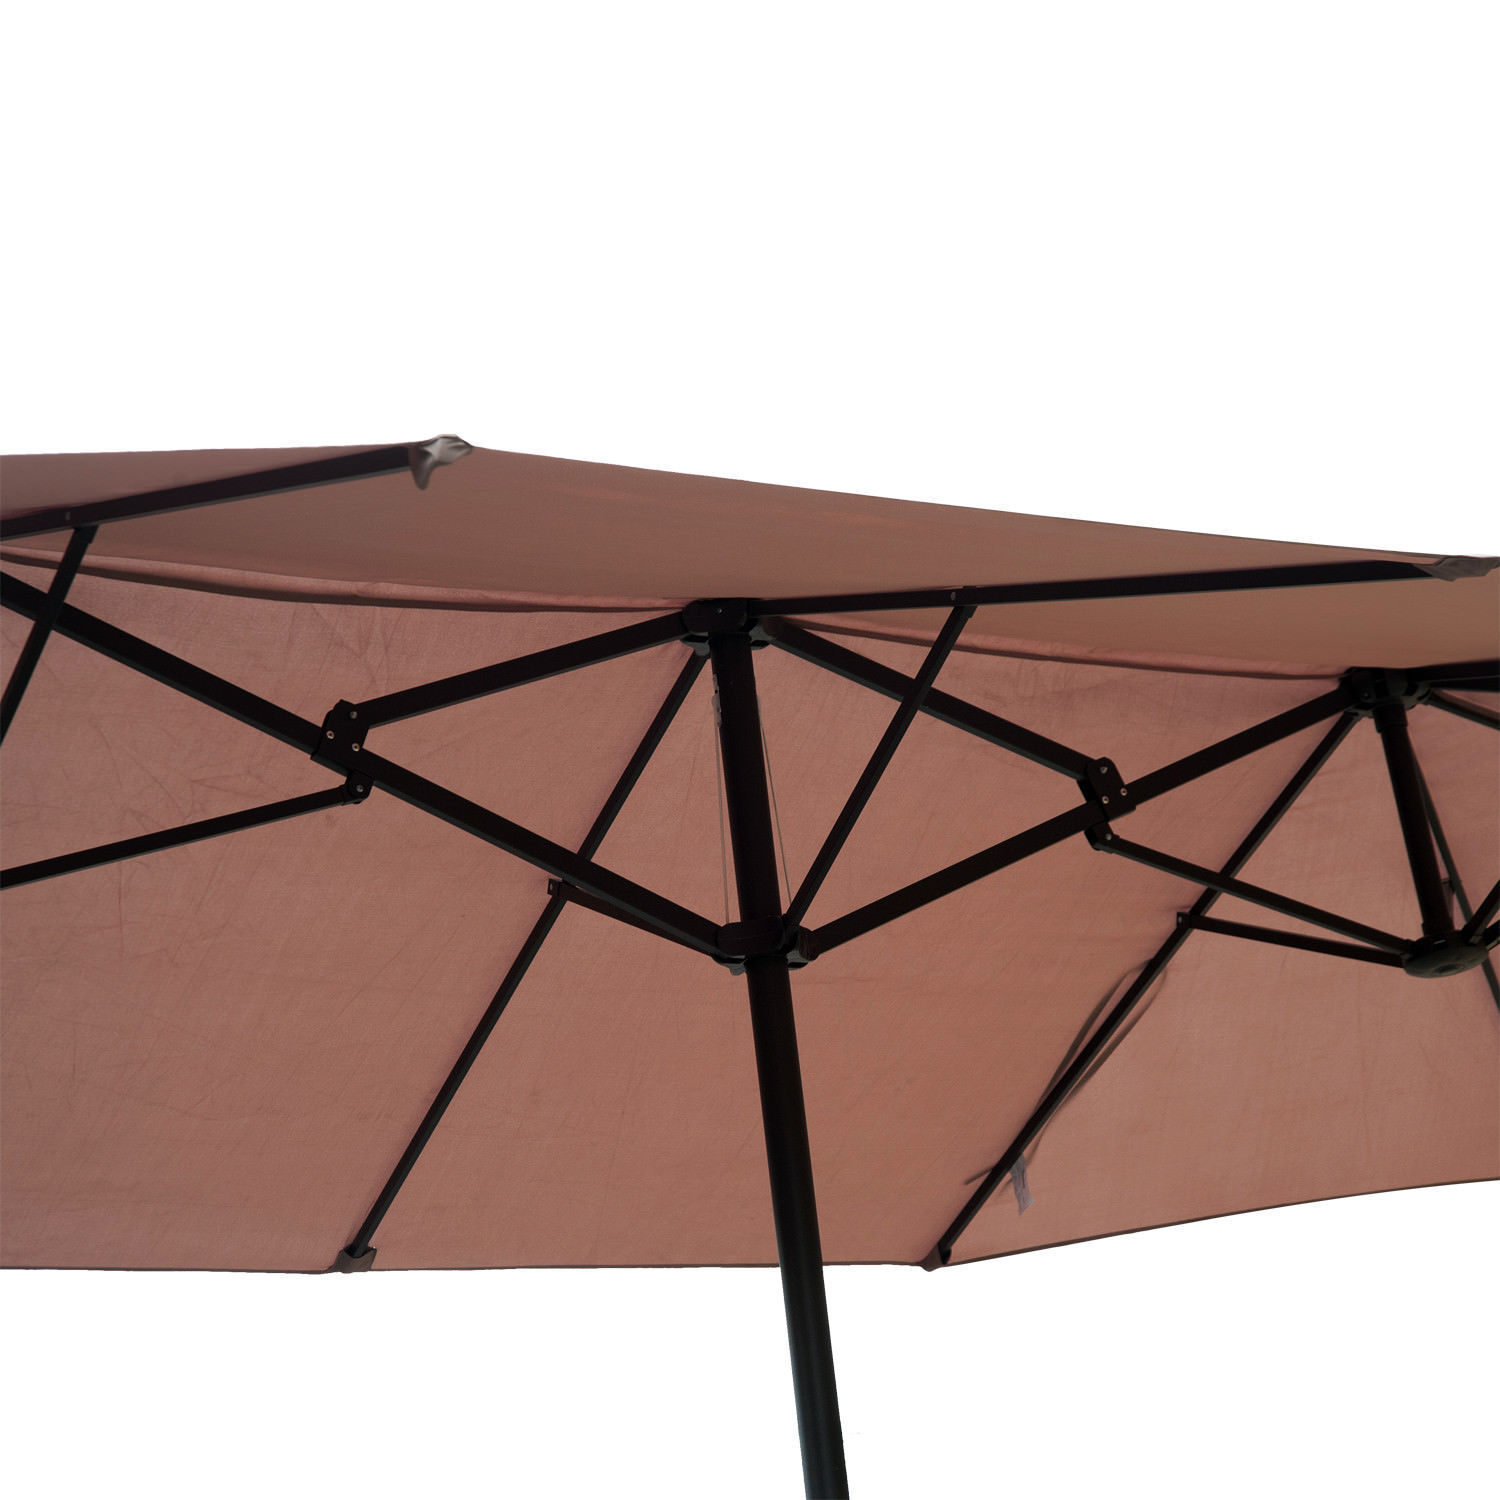 15\' Double-Sided Patio Umbrella Twin Sun and 50 similar items